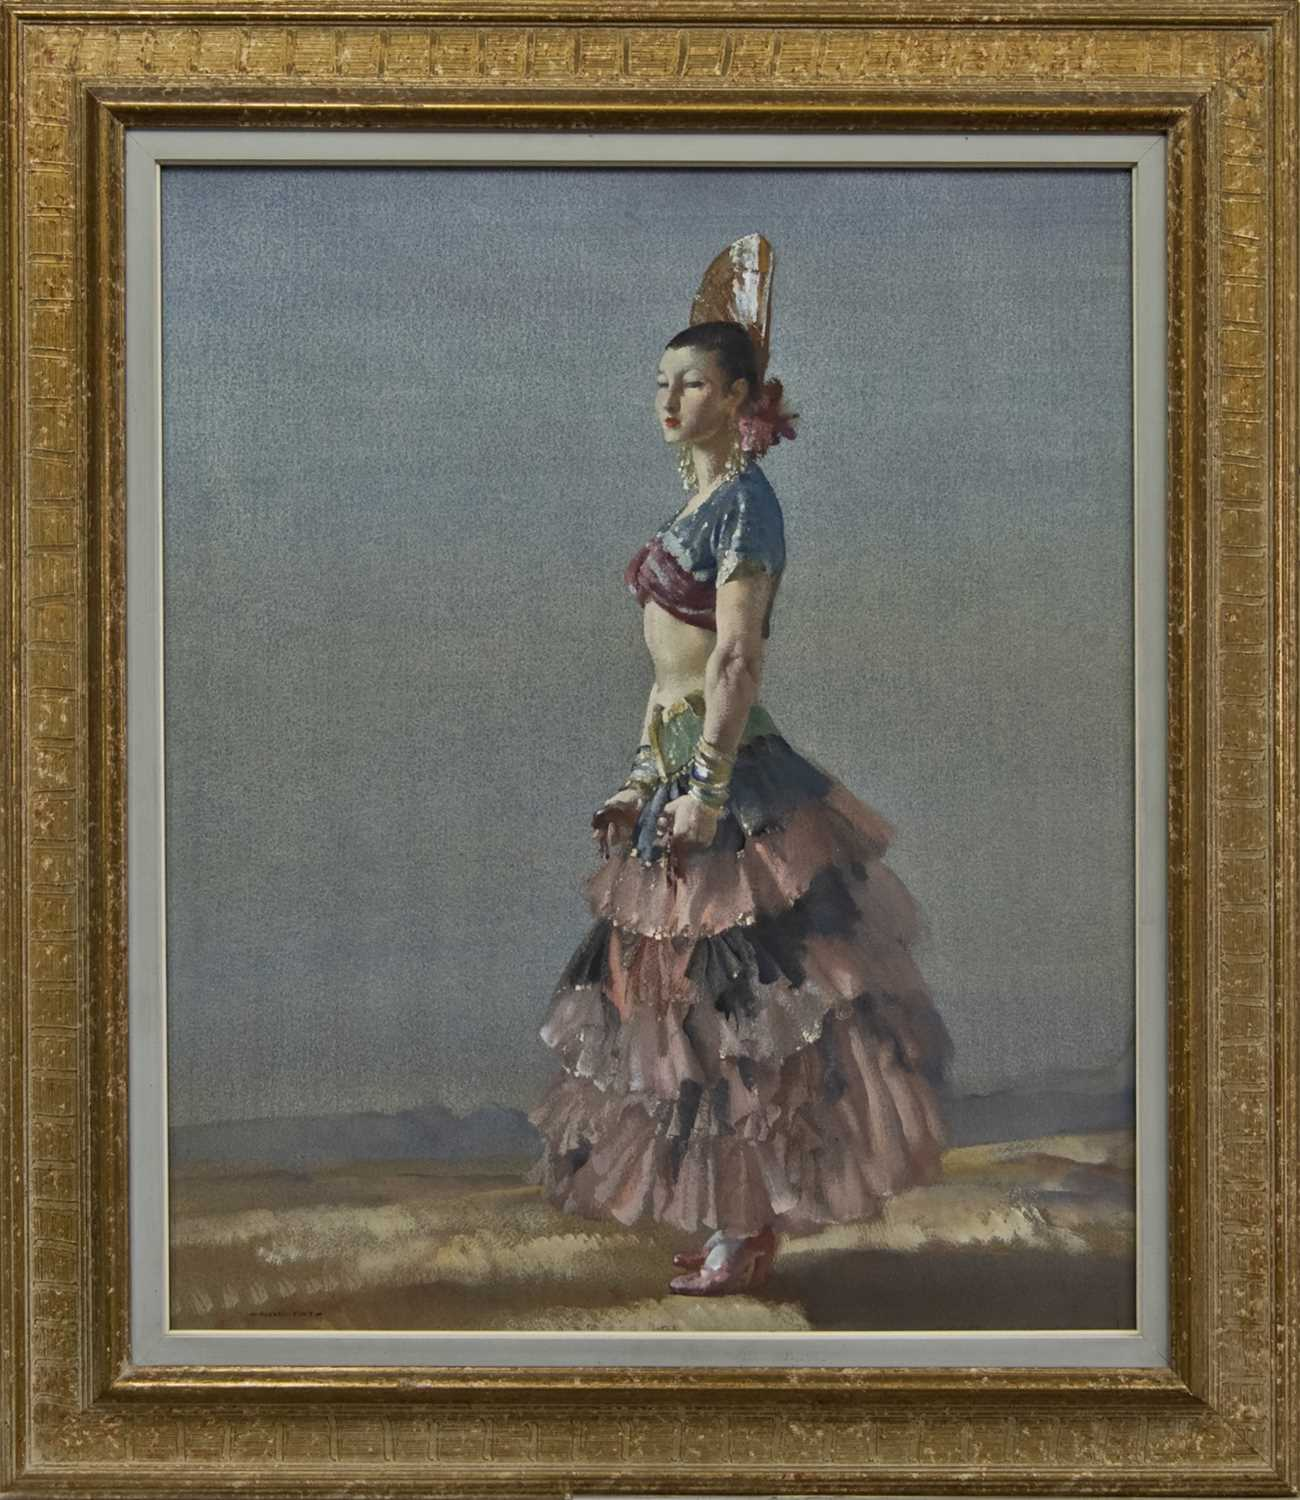 Lot 2023 - THE SPANISH DANCER, A WATERCOLOUR BY SIR WILLIAM RUSSELL FLINT